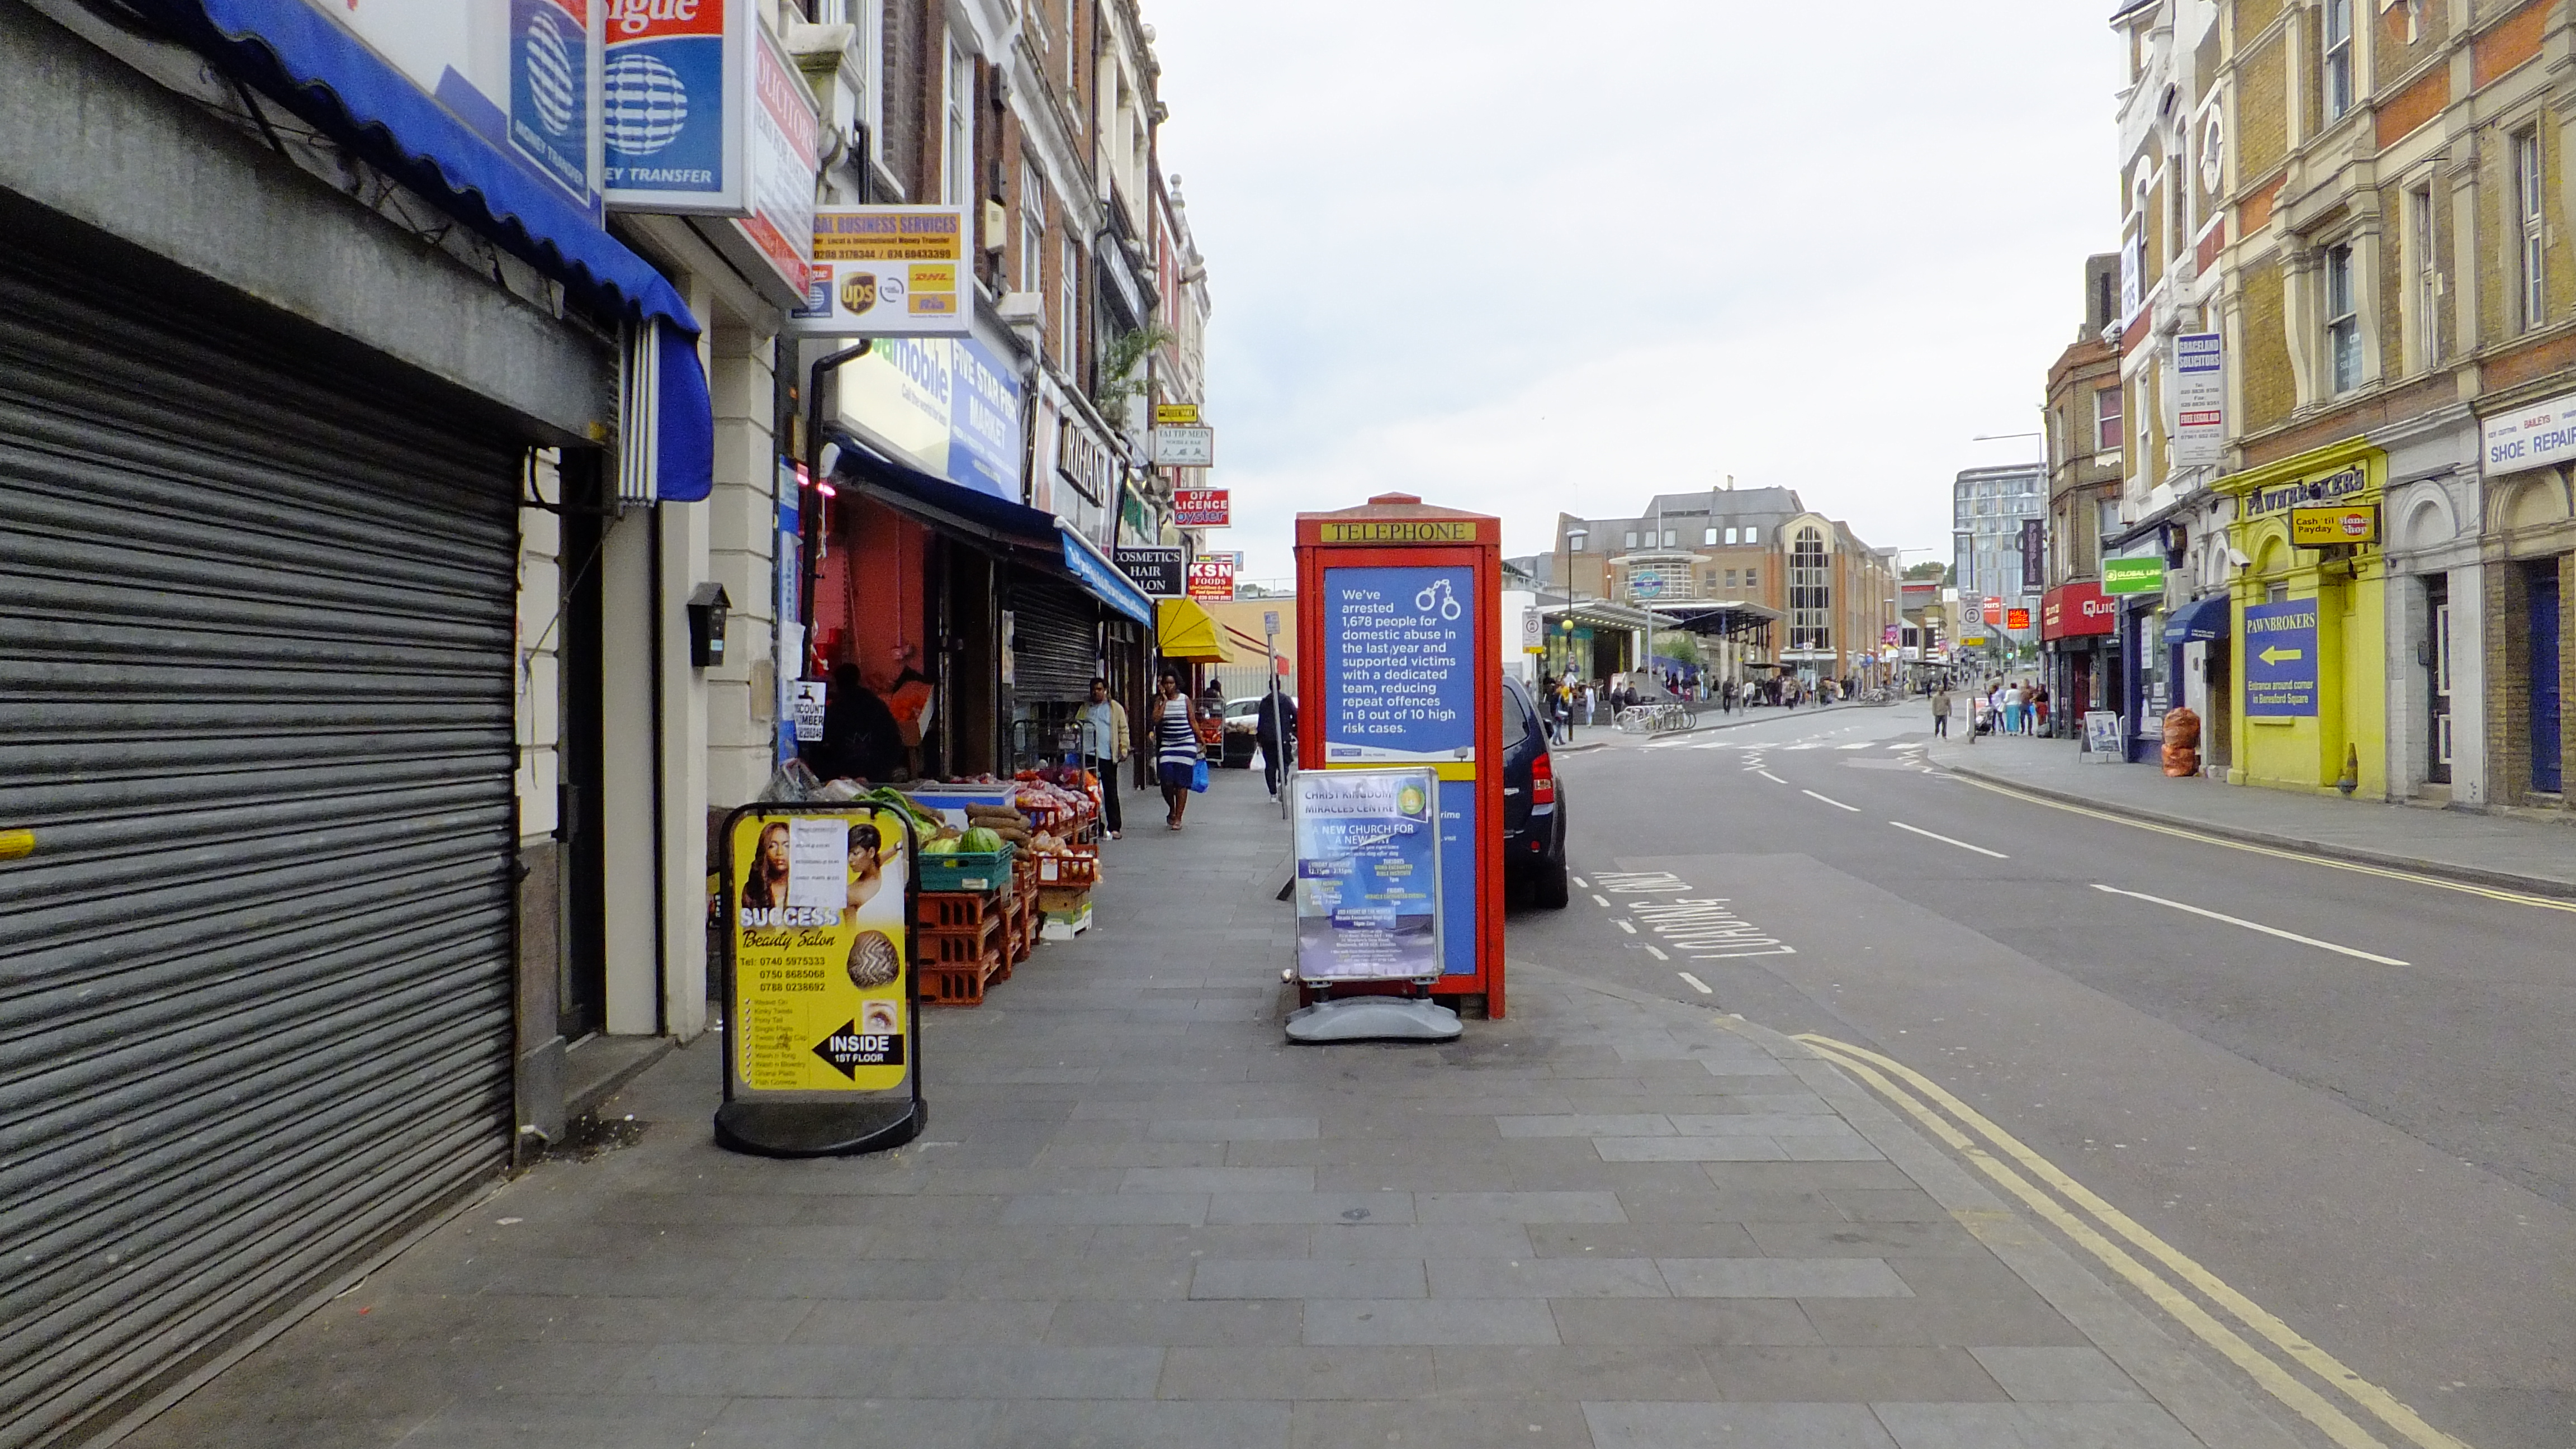 Woolwich one of the top spots in London for people using bus